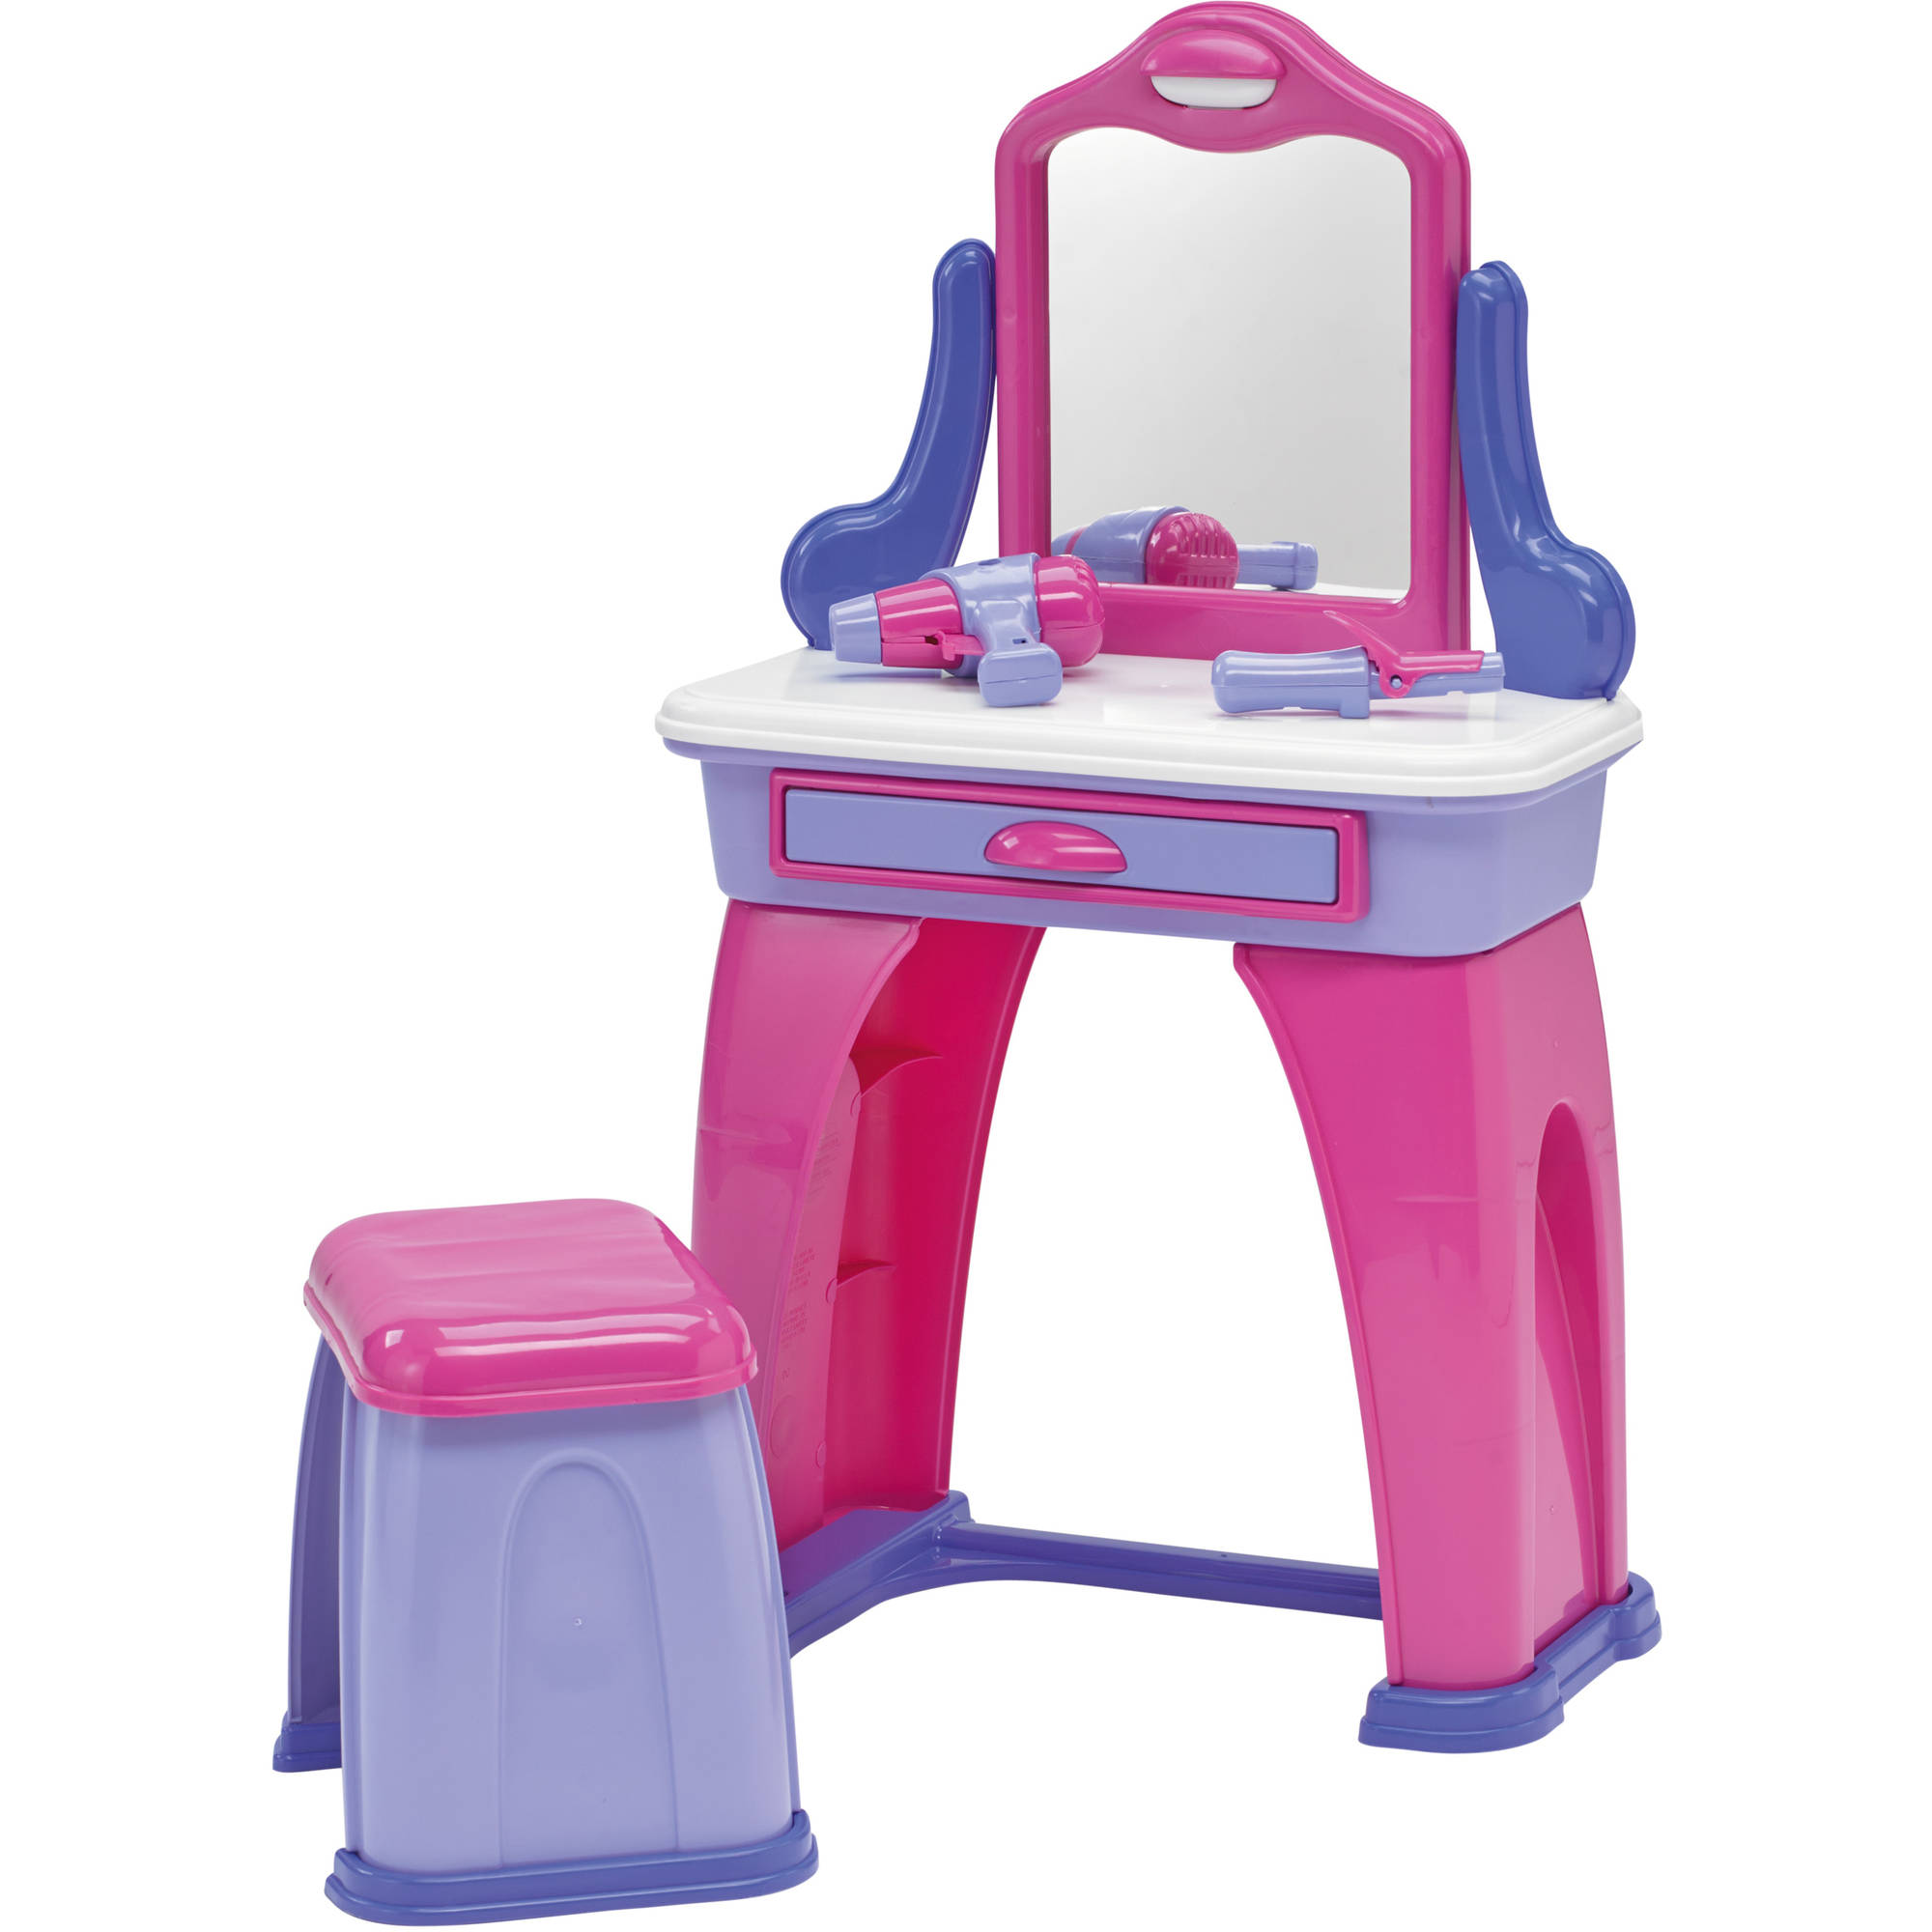 Terrific American Plastic Toys My Very Own Kids Vanity With 7 Accessories Walmart Com Lamtechconsult Wood Chair Design Ideas Lamtechconsultcom